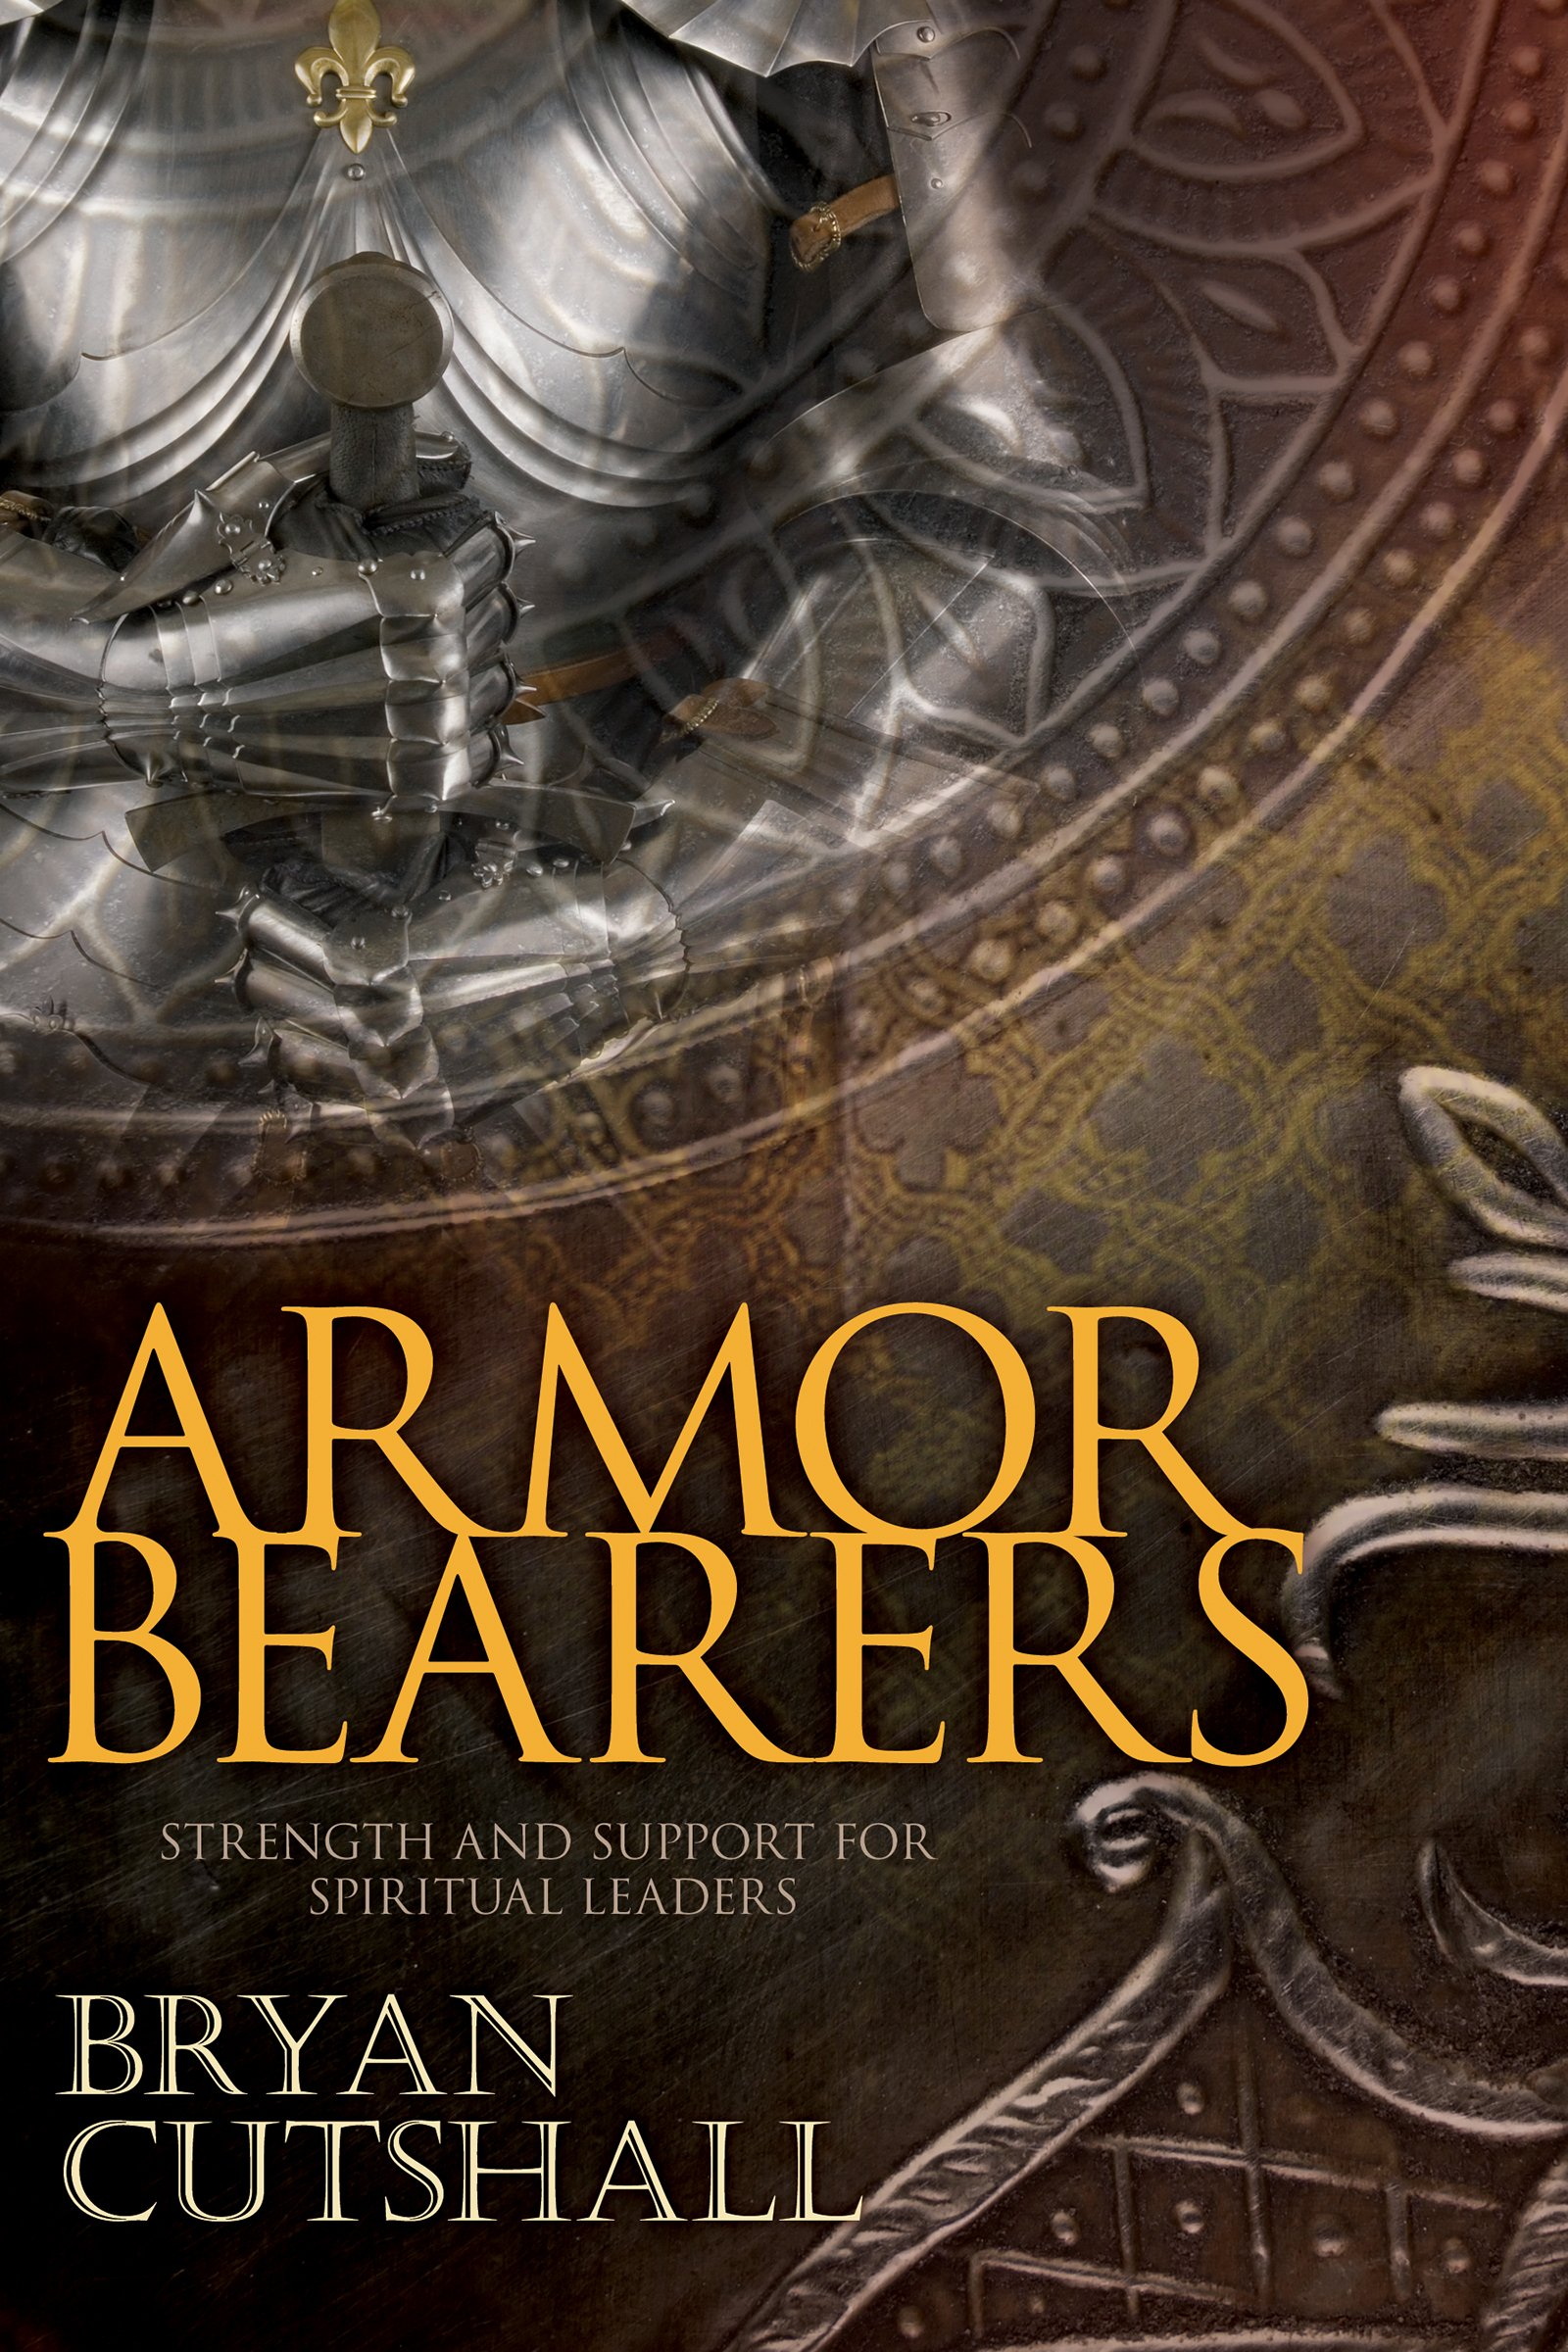 Armorbearers: Strength and Support for Spiritual Leaders